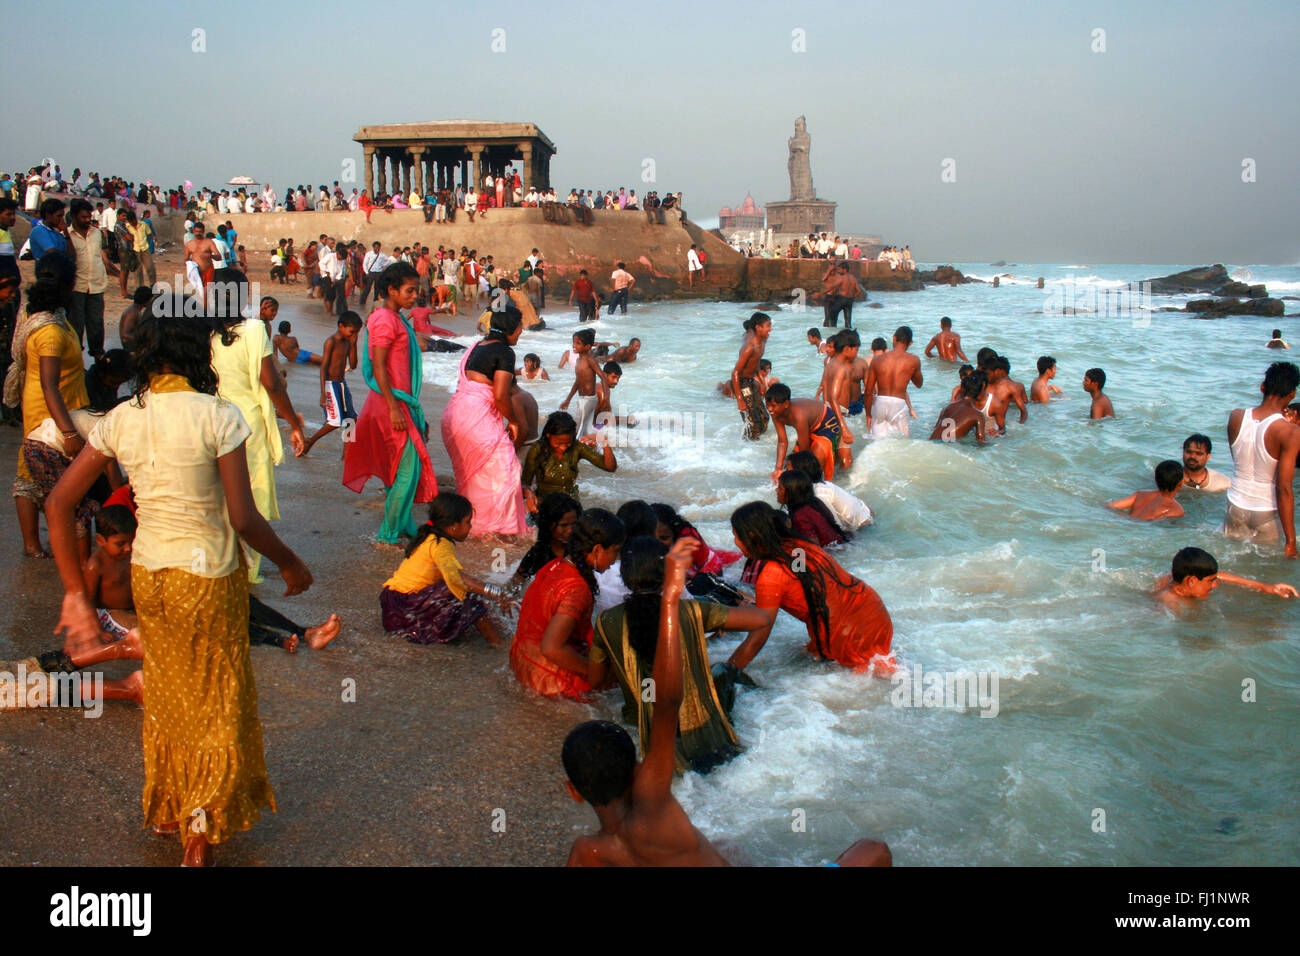 People are bathing in the holy waters of the Indian ocean in Kanyakumari , India - Stock Image